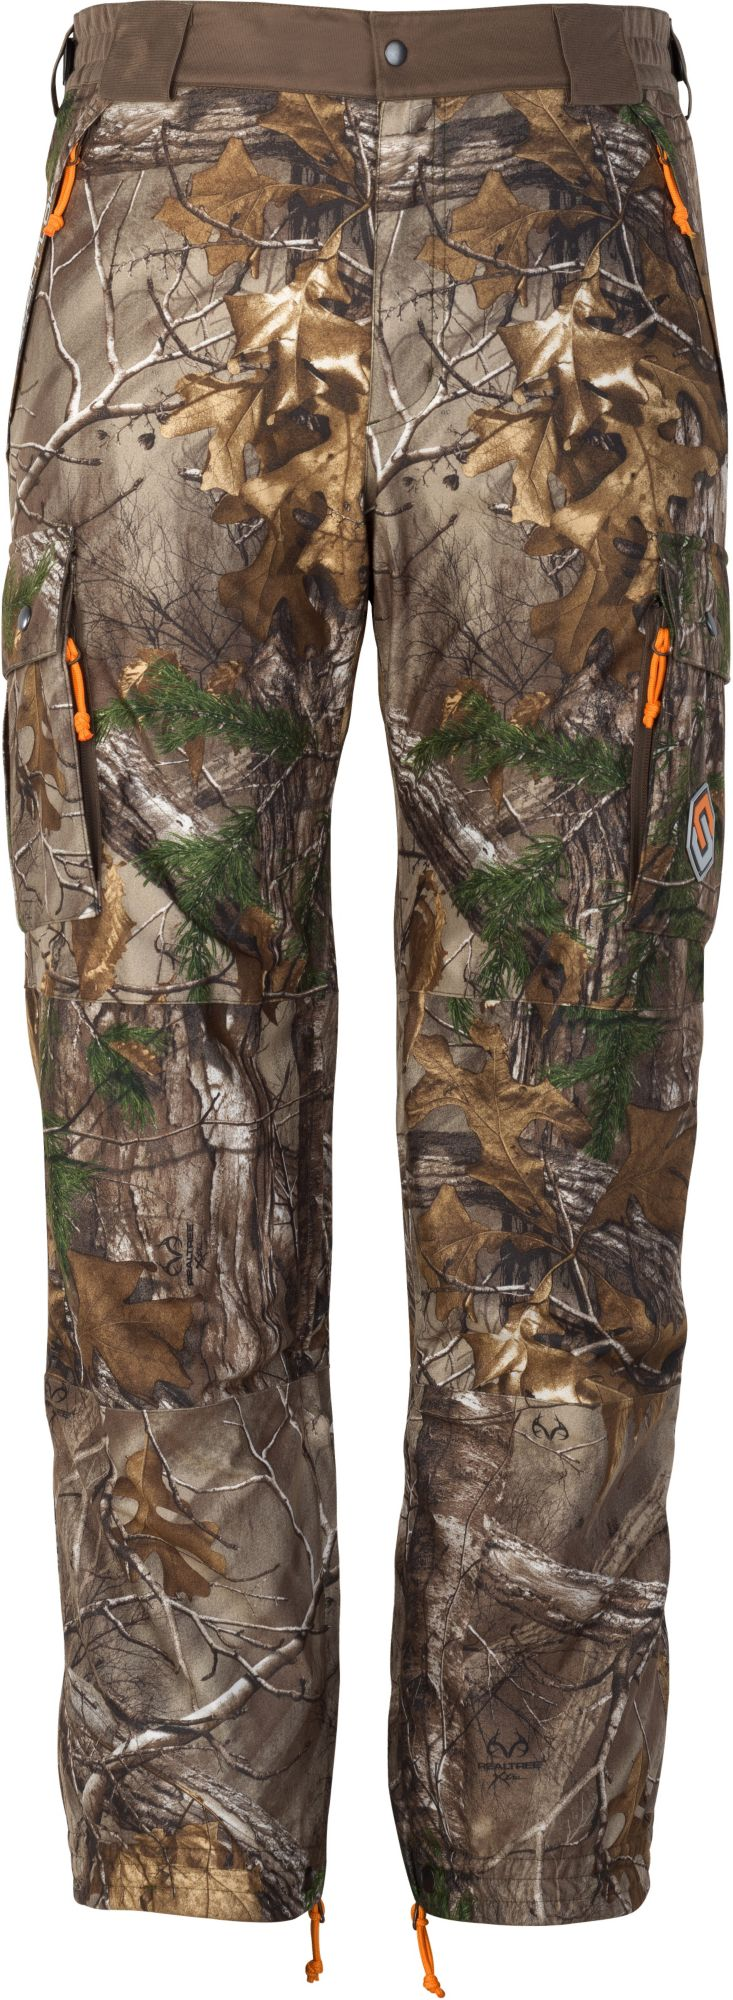 382c54657ad9b ScentLok Men's Cold Blooded Hunting Pants, Size: XXL, Brown thumbnail